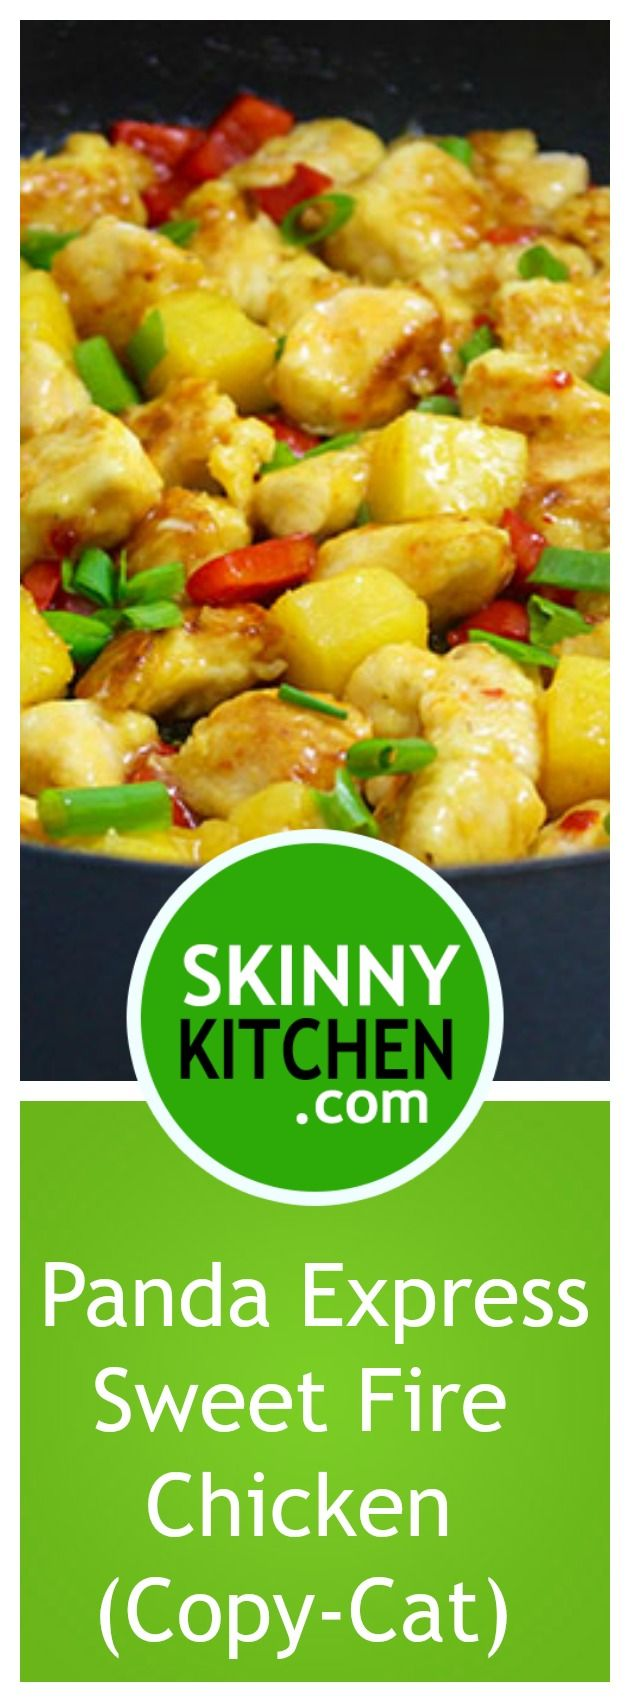 Panda Express Sweet Fire Chicken (Copy-Cat). Iabsolutelylove this chicken dish at Panda Express! Here's an easy homemade version that tastes amazingly good!  Each serving, 268 calories, 7g fat and 9 SmartPoints. A must try!  #pandaexpress #copycat #takeout https://www.skinnykitchen.com/recipes/panda-express-sweet-fire-chicken-copy-cat/